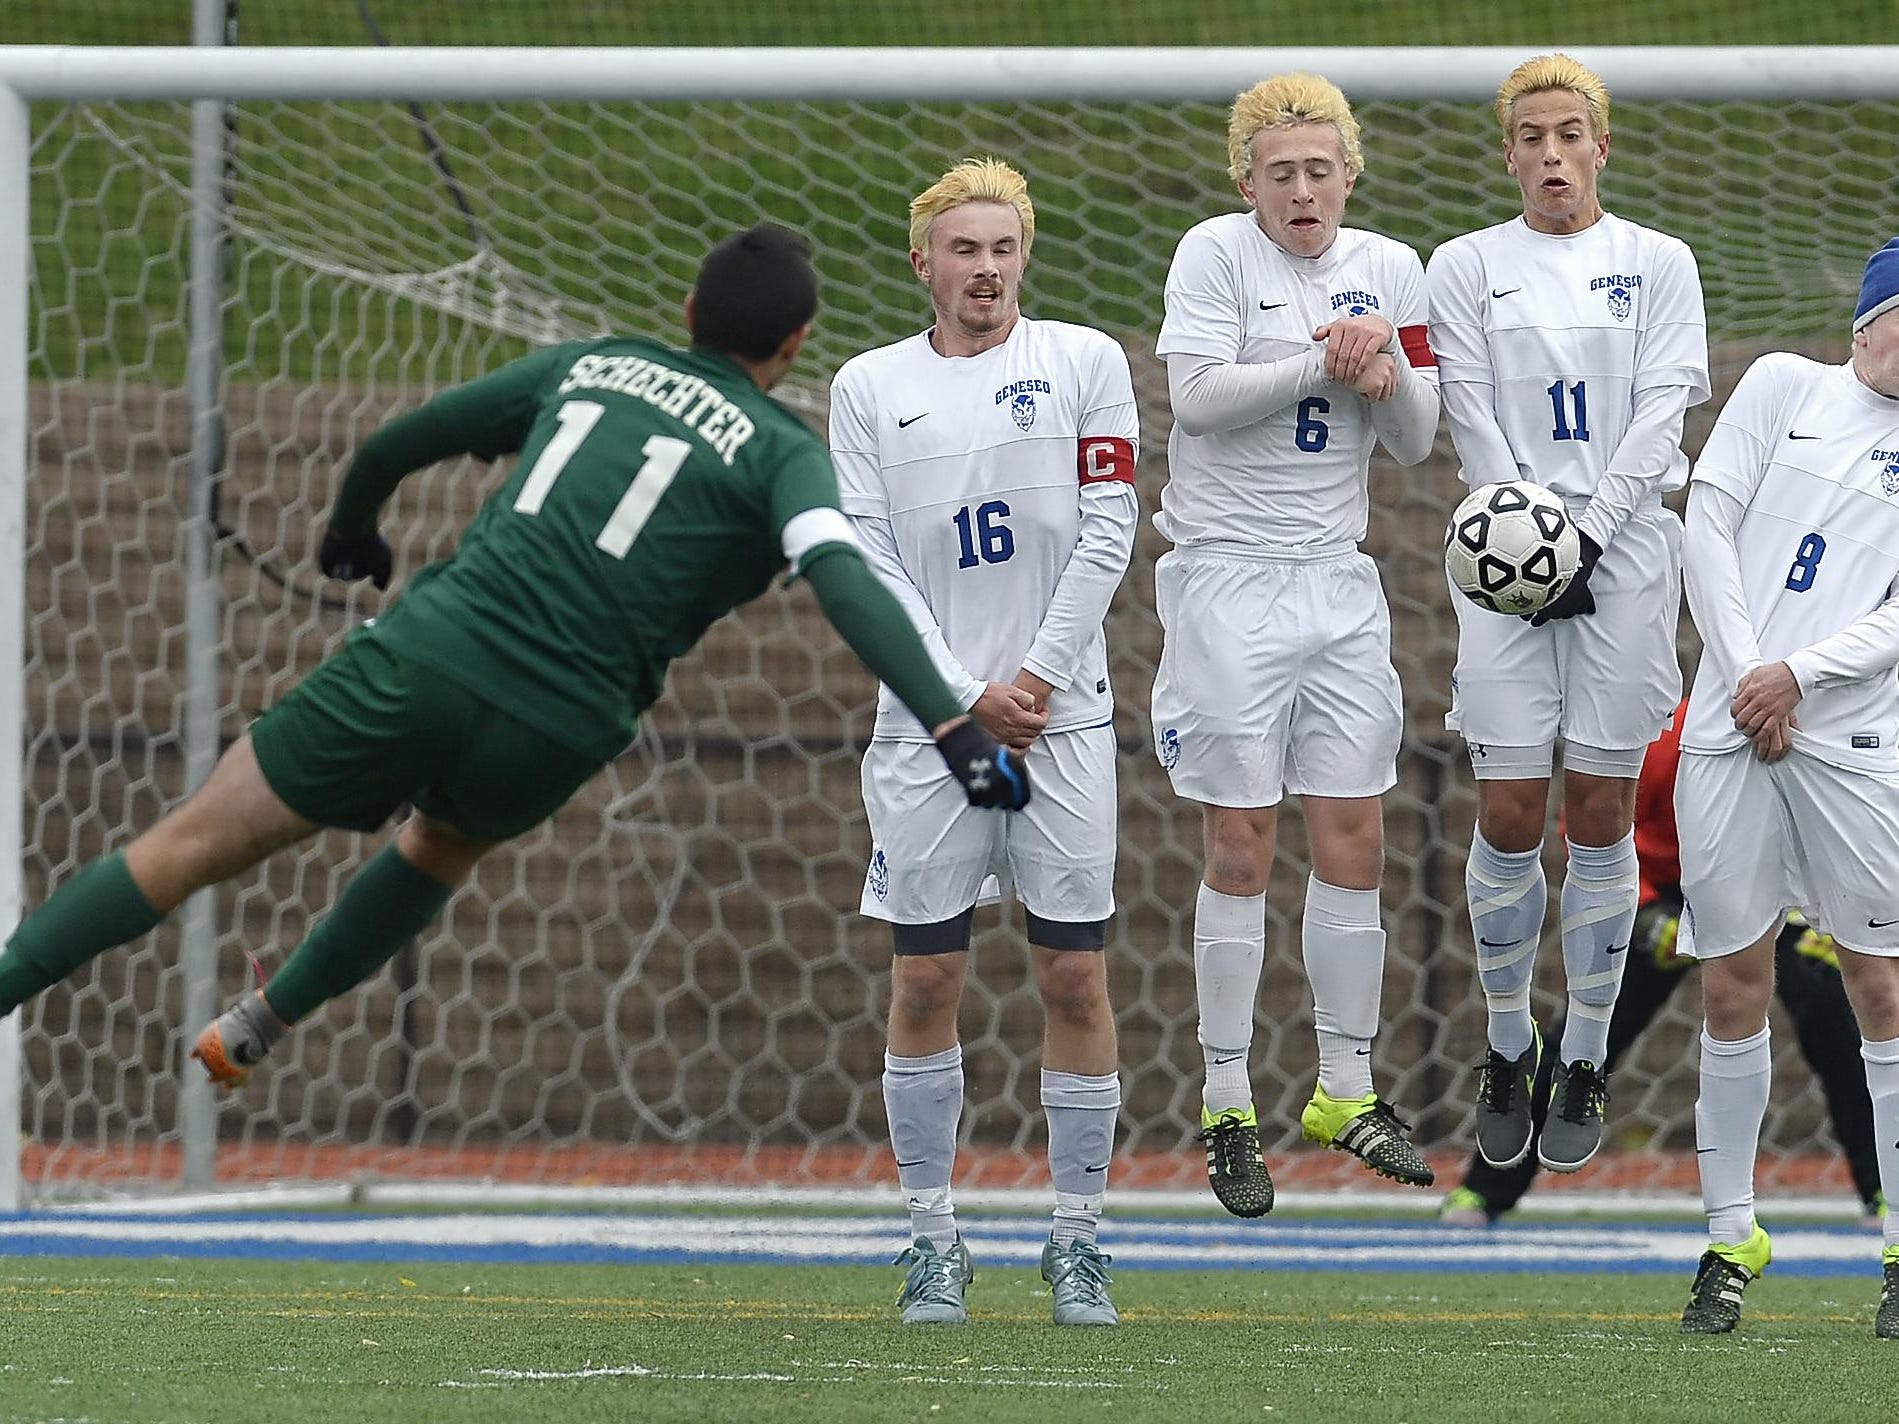 Geneseo's wall of Danny Cannon, right, Mike Caruso, Ethan Roth and Sean Kelly stop a free kick by Schecter's Jonathan Rand during a NYSPHSAA Boys Soccer Championships Class C semifinal played at Middletown High School on Saturday, November 14, 2015. Geneseo's season ends with a 1-0 loss to Schecter-I.